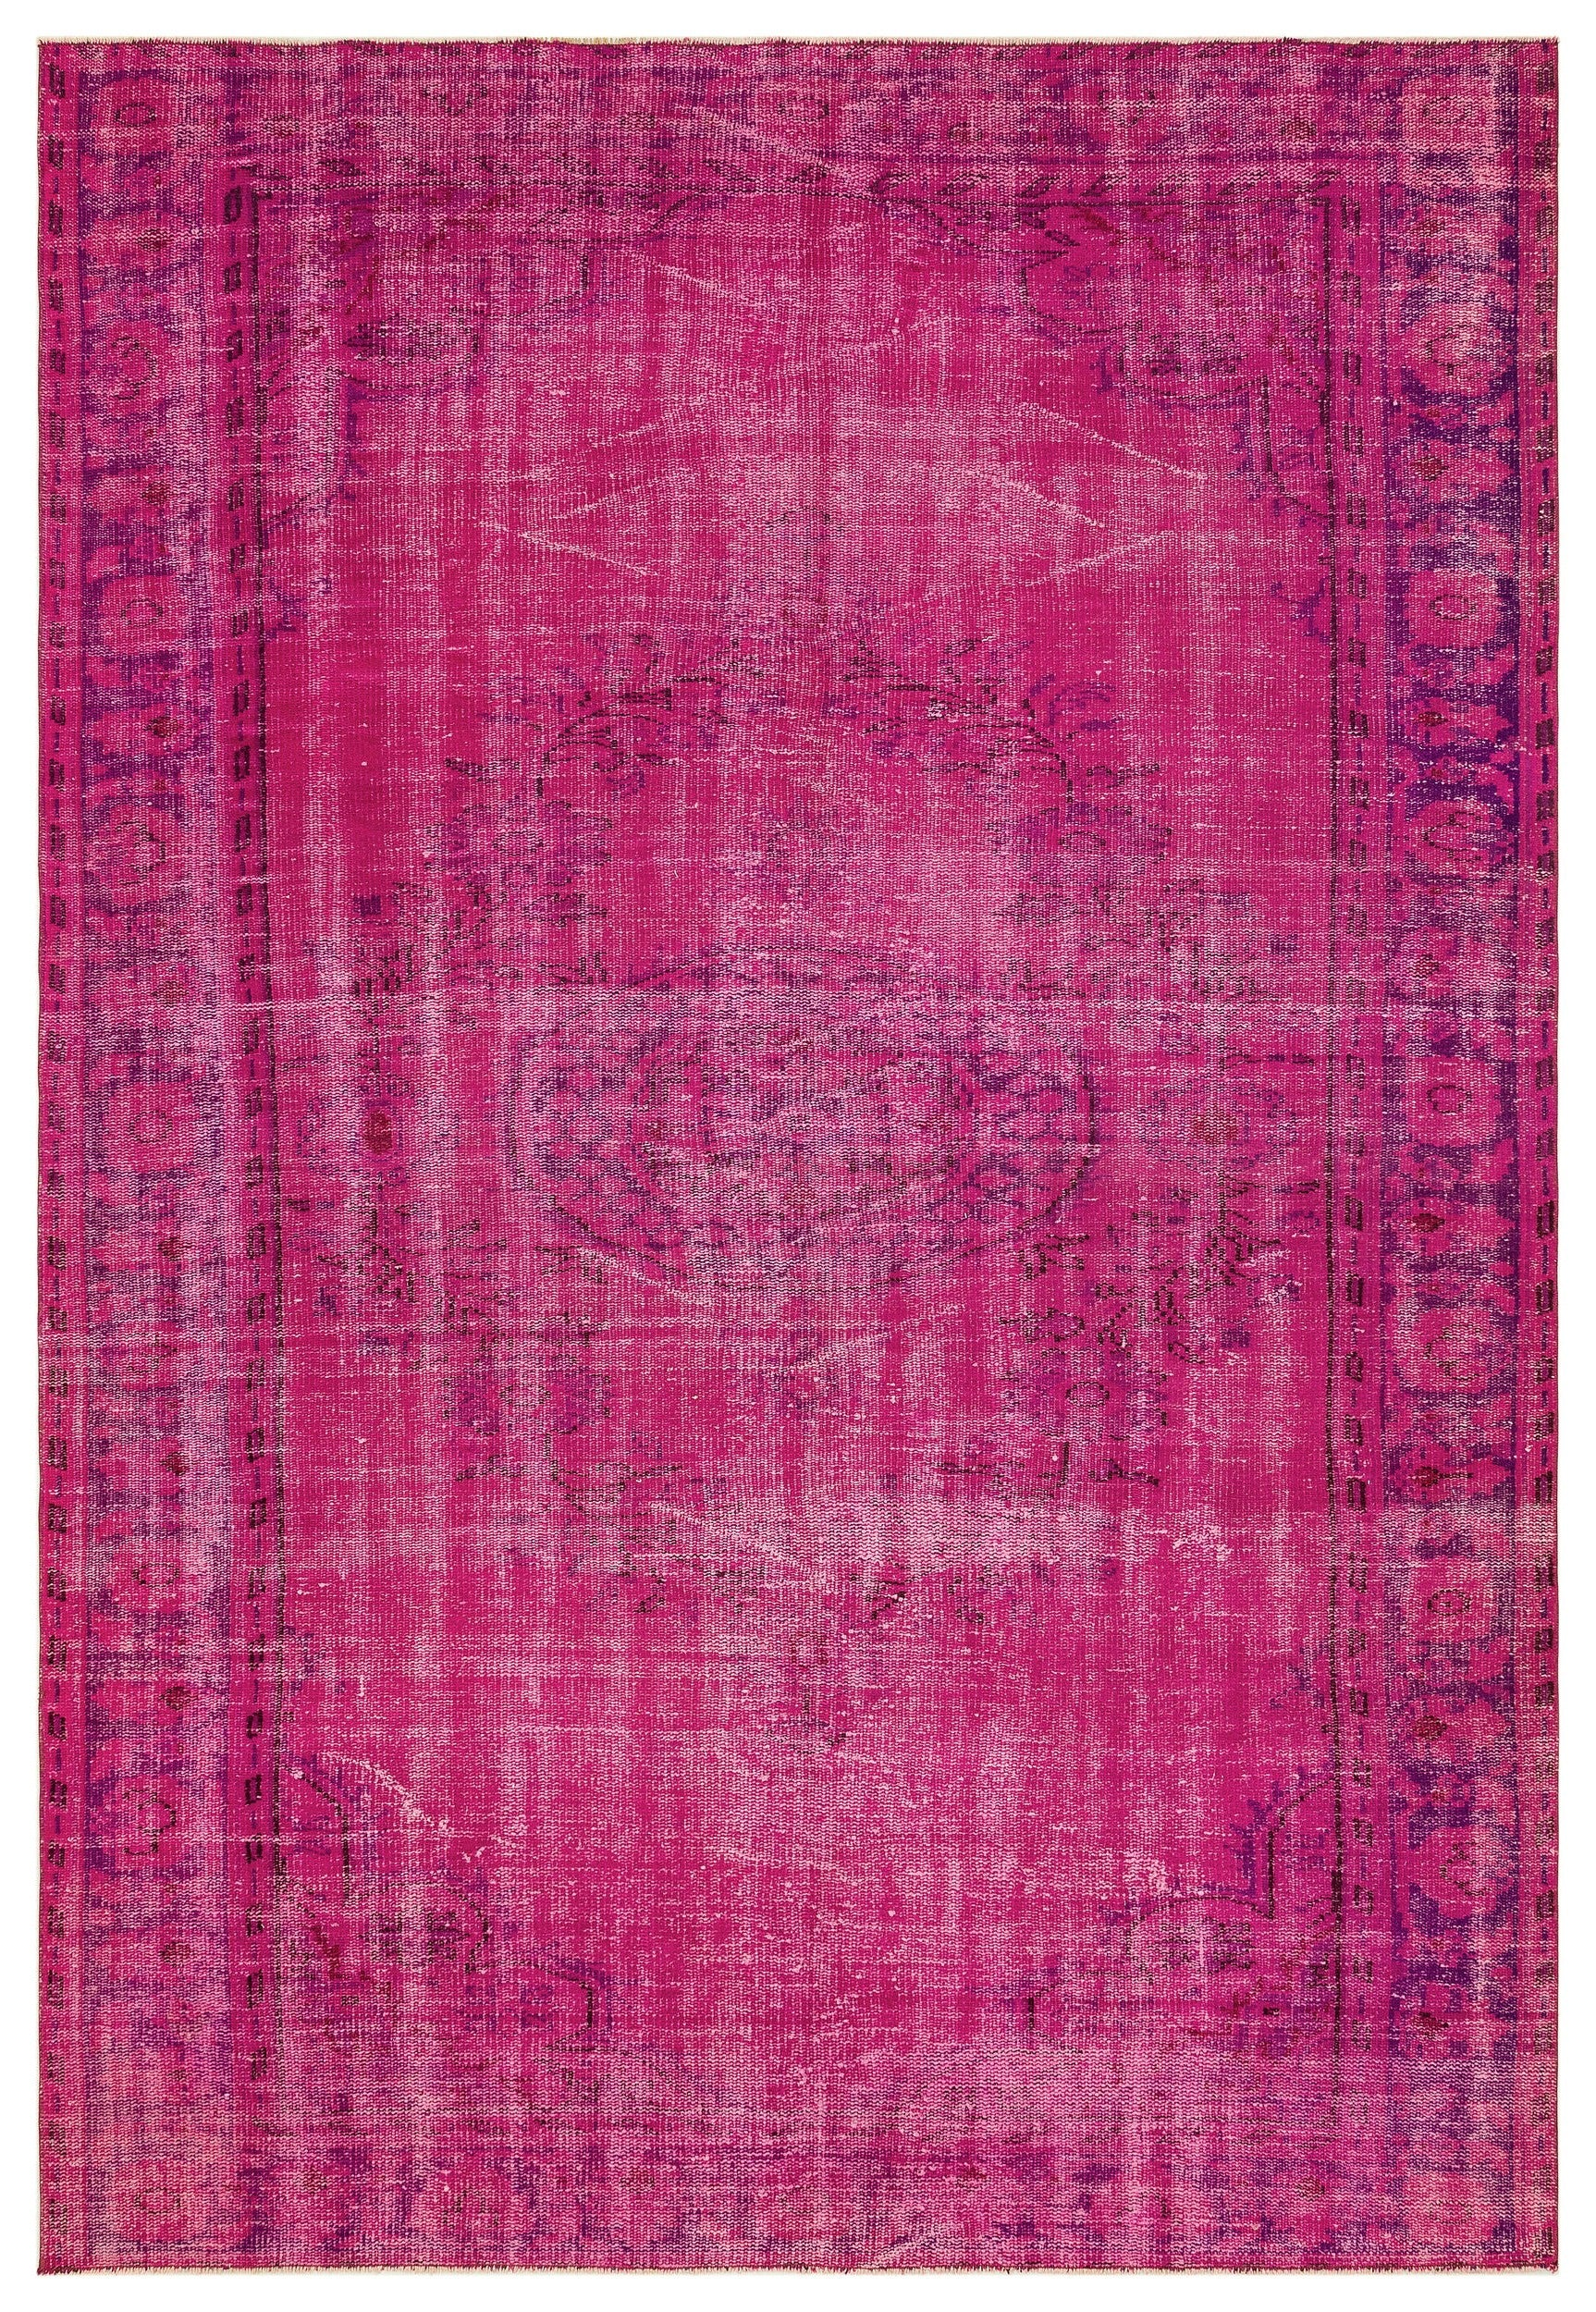 Fuchsia Over Dyed Vintage Rug 6'3'' x 9'2'' ft 190 x 279 cm